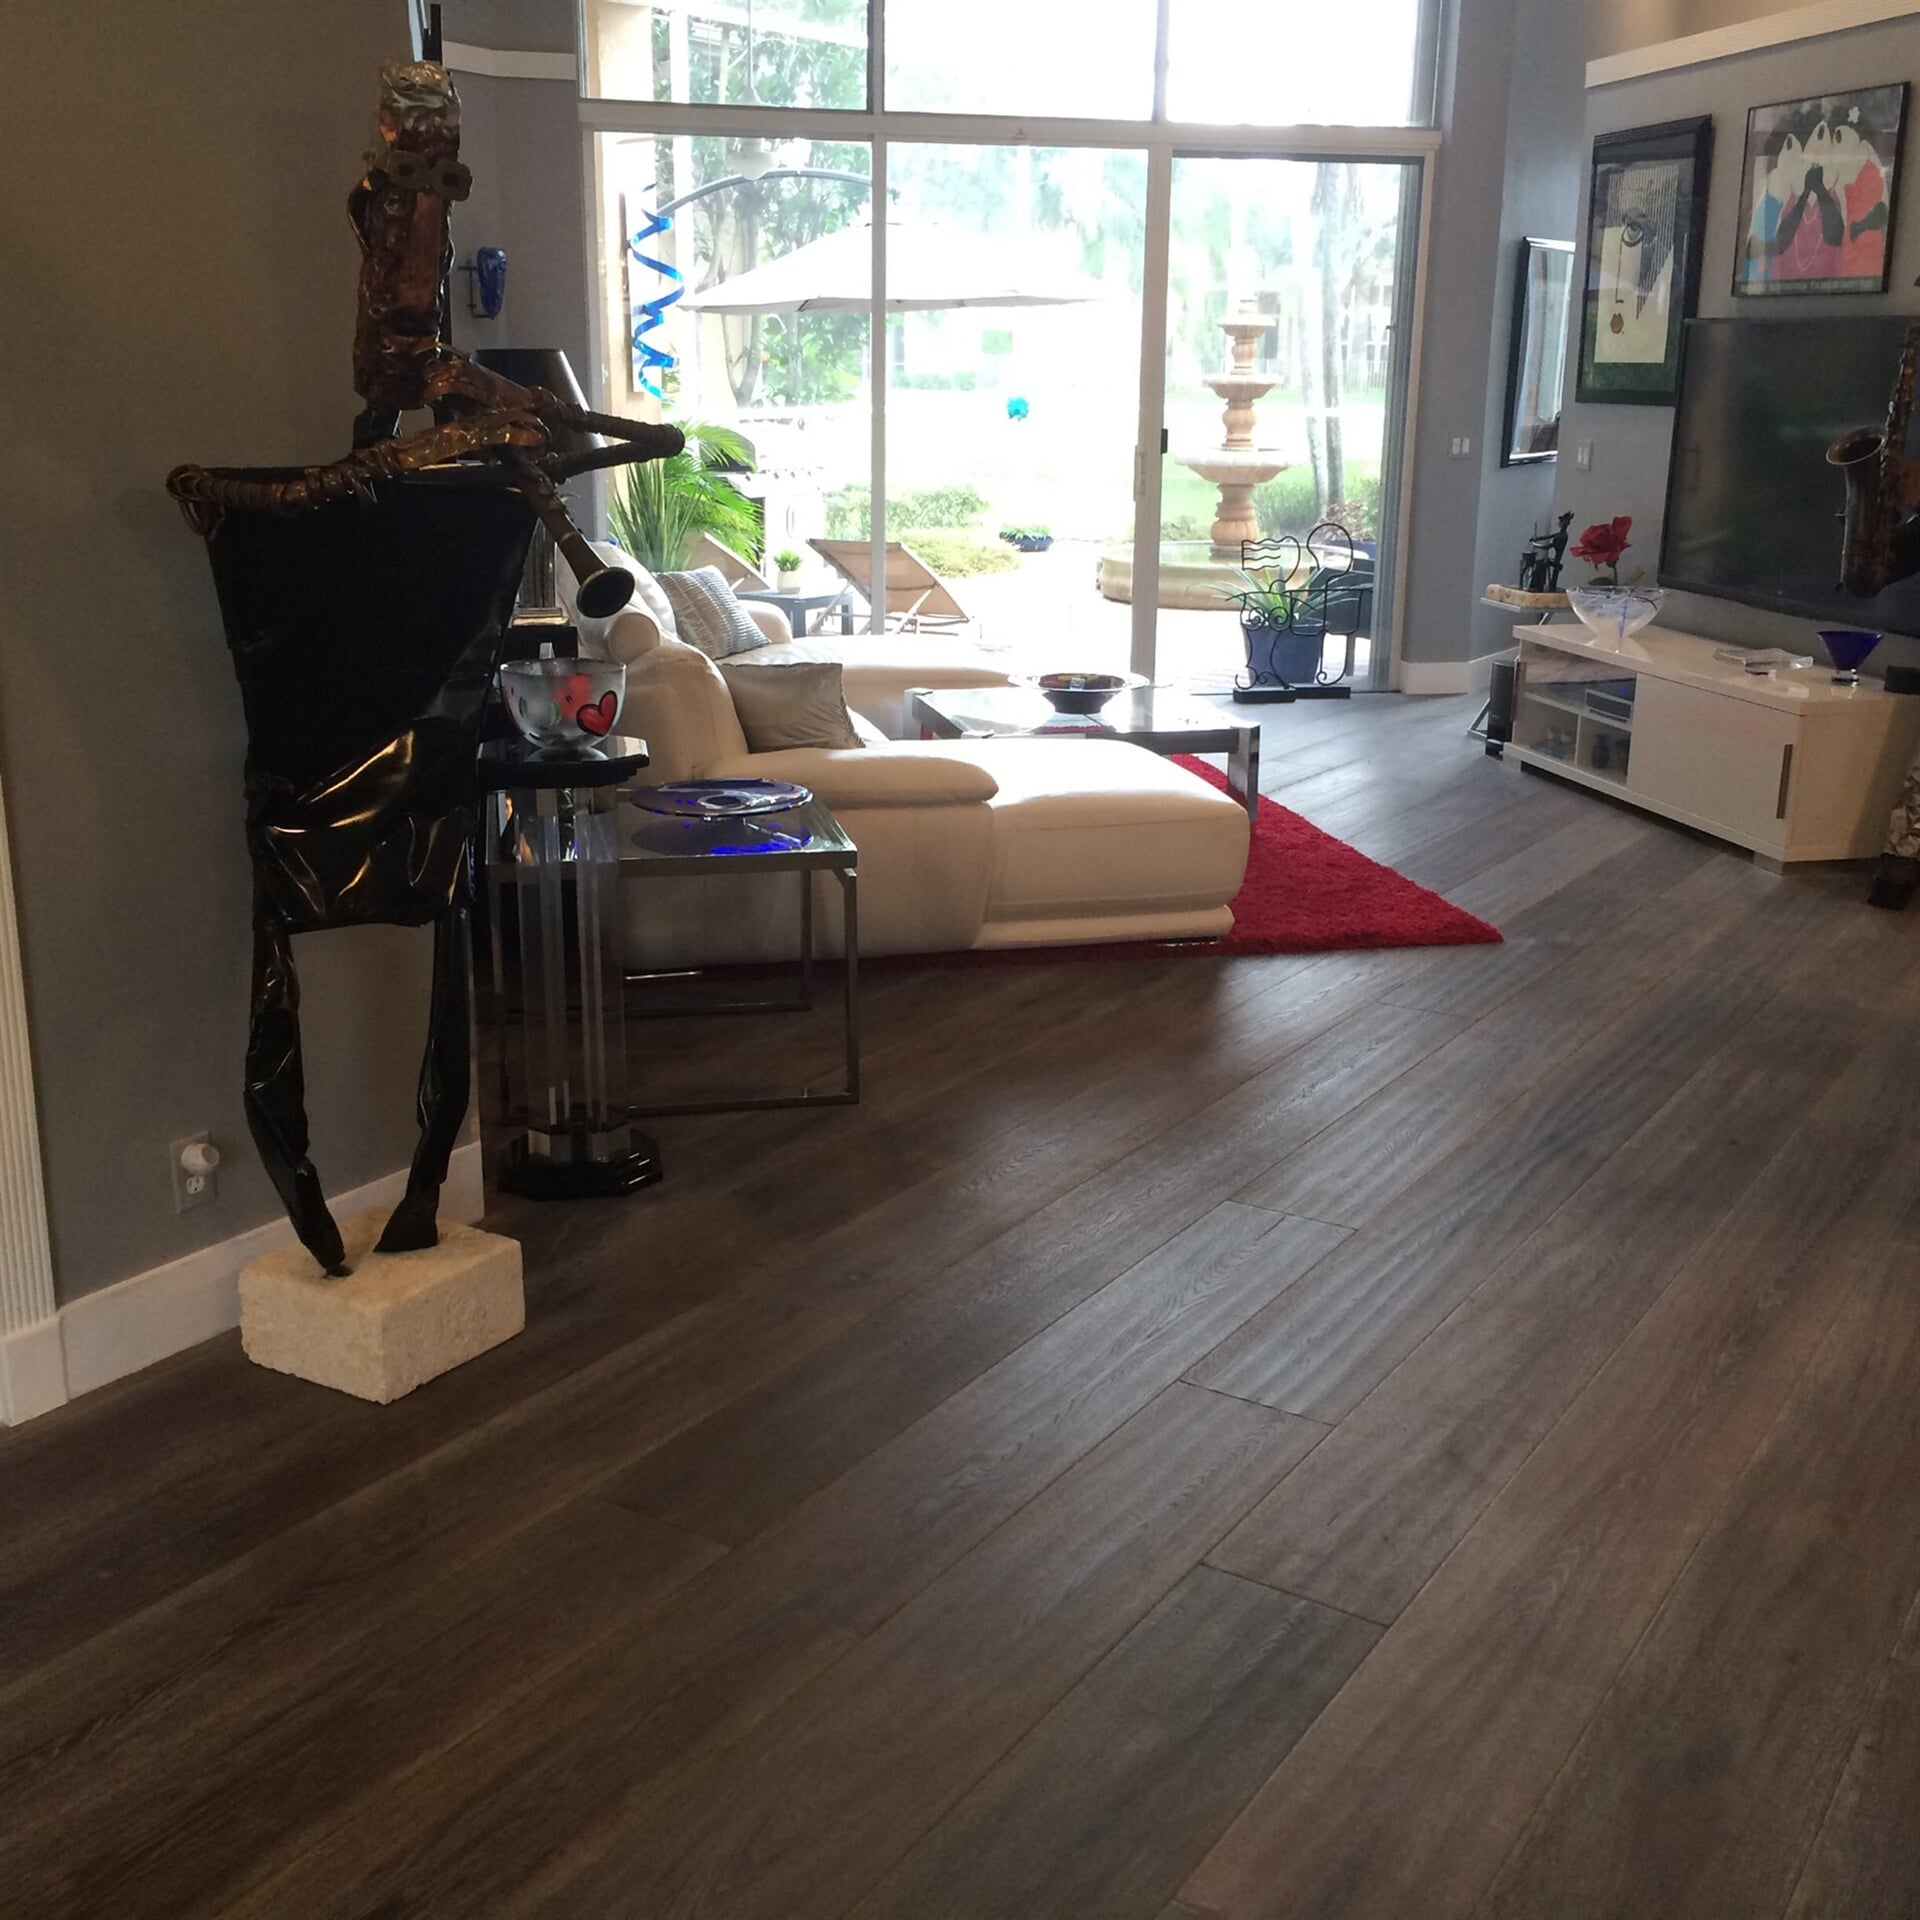 Textured wood flooring in Jupiter, FL from Floors For You Kitchen & Bath